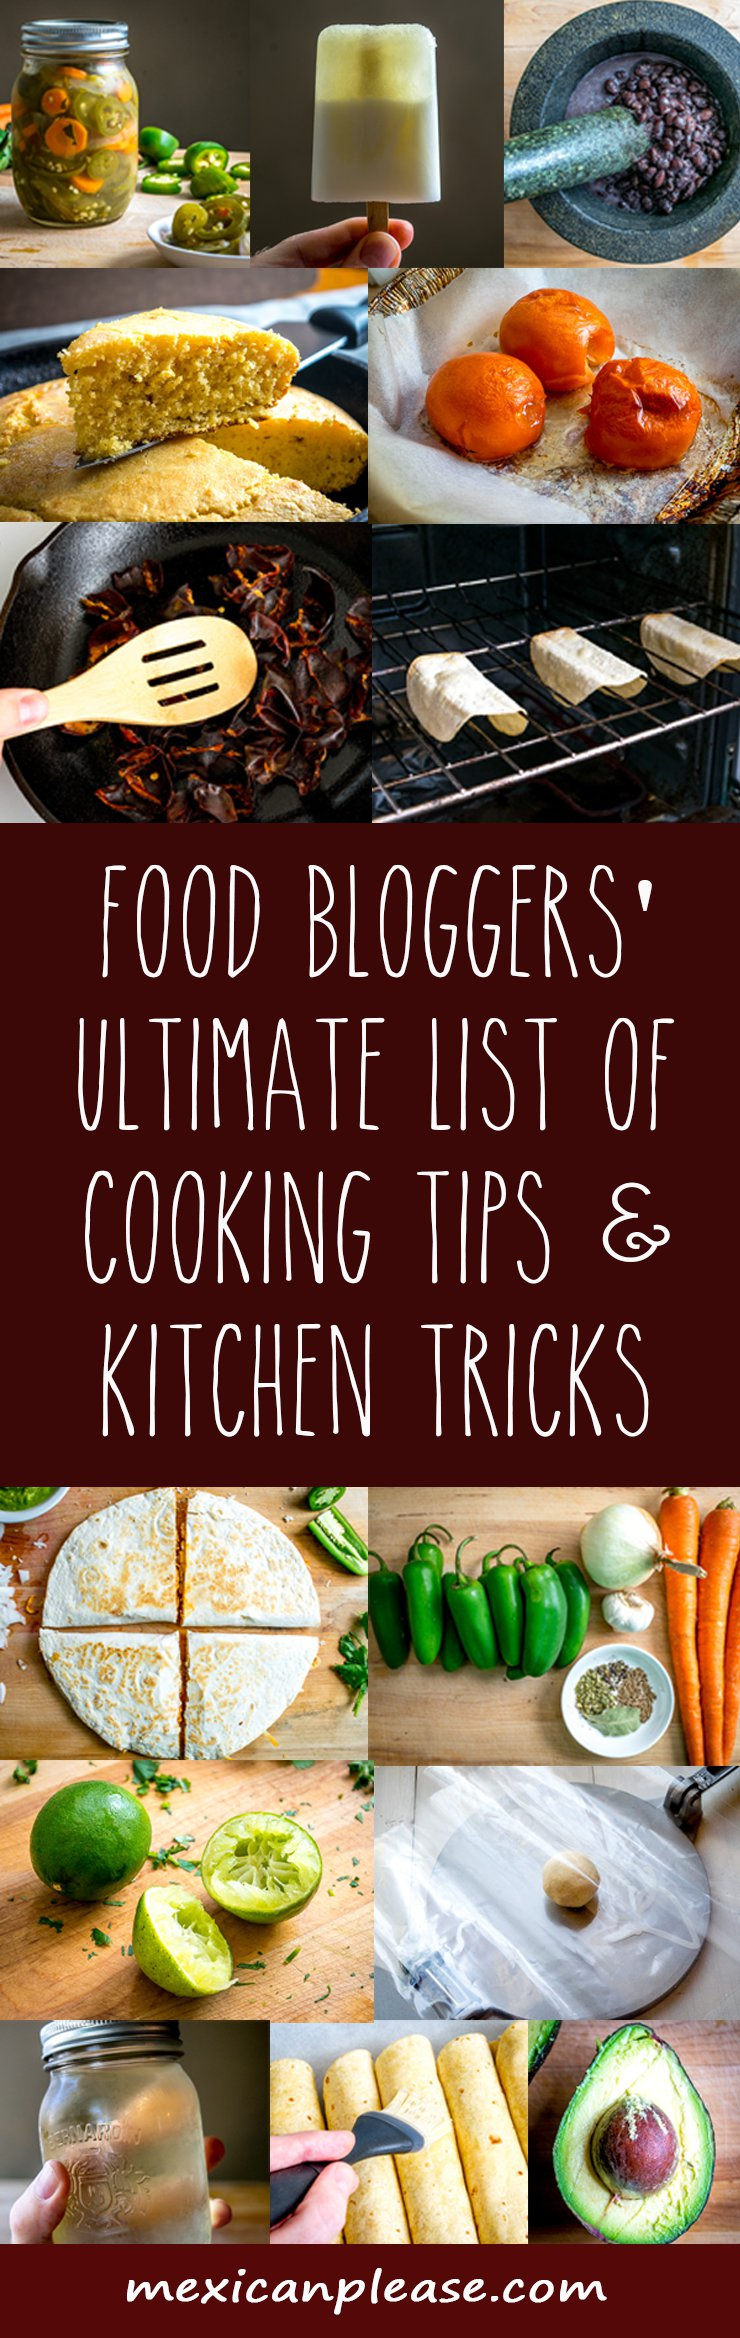 A wealth of food blogger knowledge distilled into an easily digestible list of cooking tips and kitchen tricks. Over 150 cooking tips in the list! mexicanplease.com